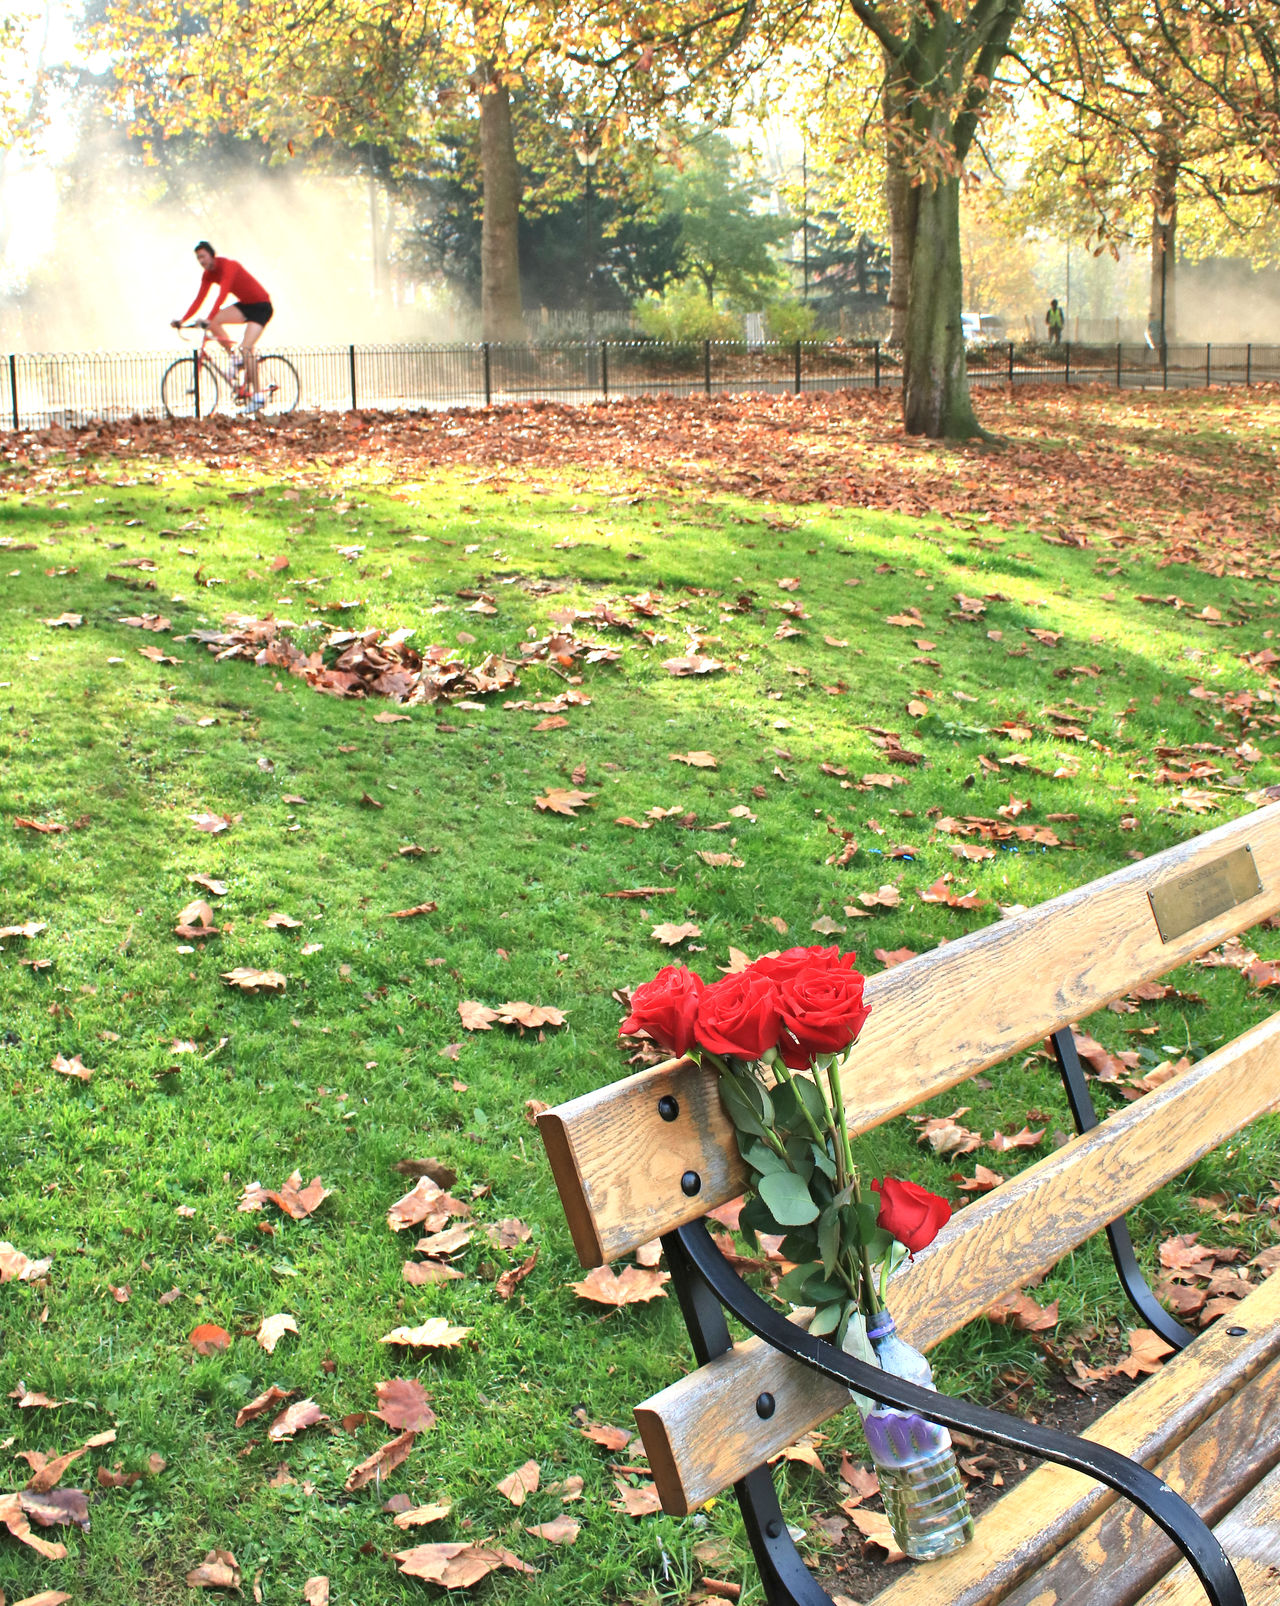 Battersea Park Bicycle Cycling Cyclist In Red Flowers On A Bench In Memorium Late Autumn London Parks Lost Loved One Nature Outdoors Park Bench Red Flowers Red Roses In A Bottle Red Roses🌹 Remebrance Remember Remembering You Sorry Tree